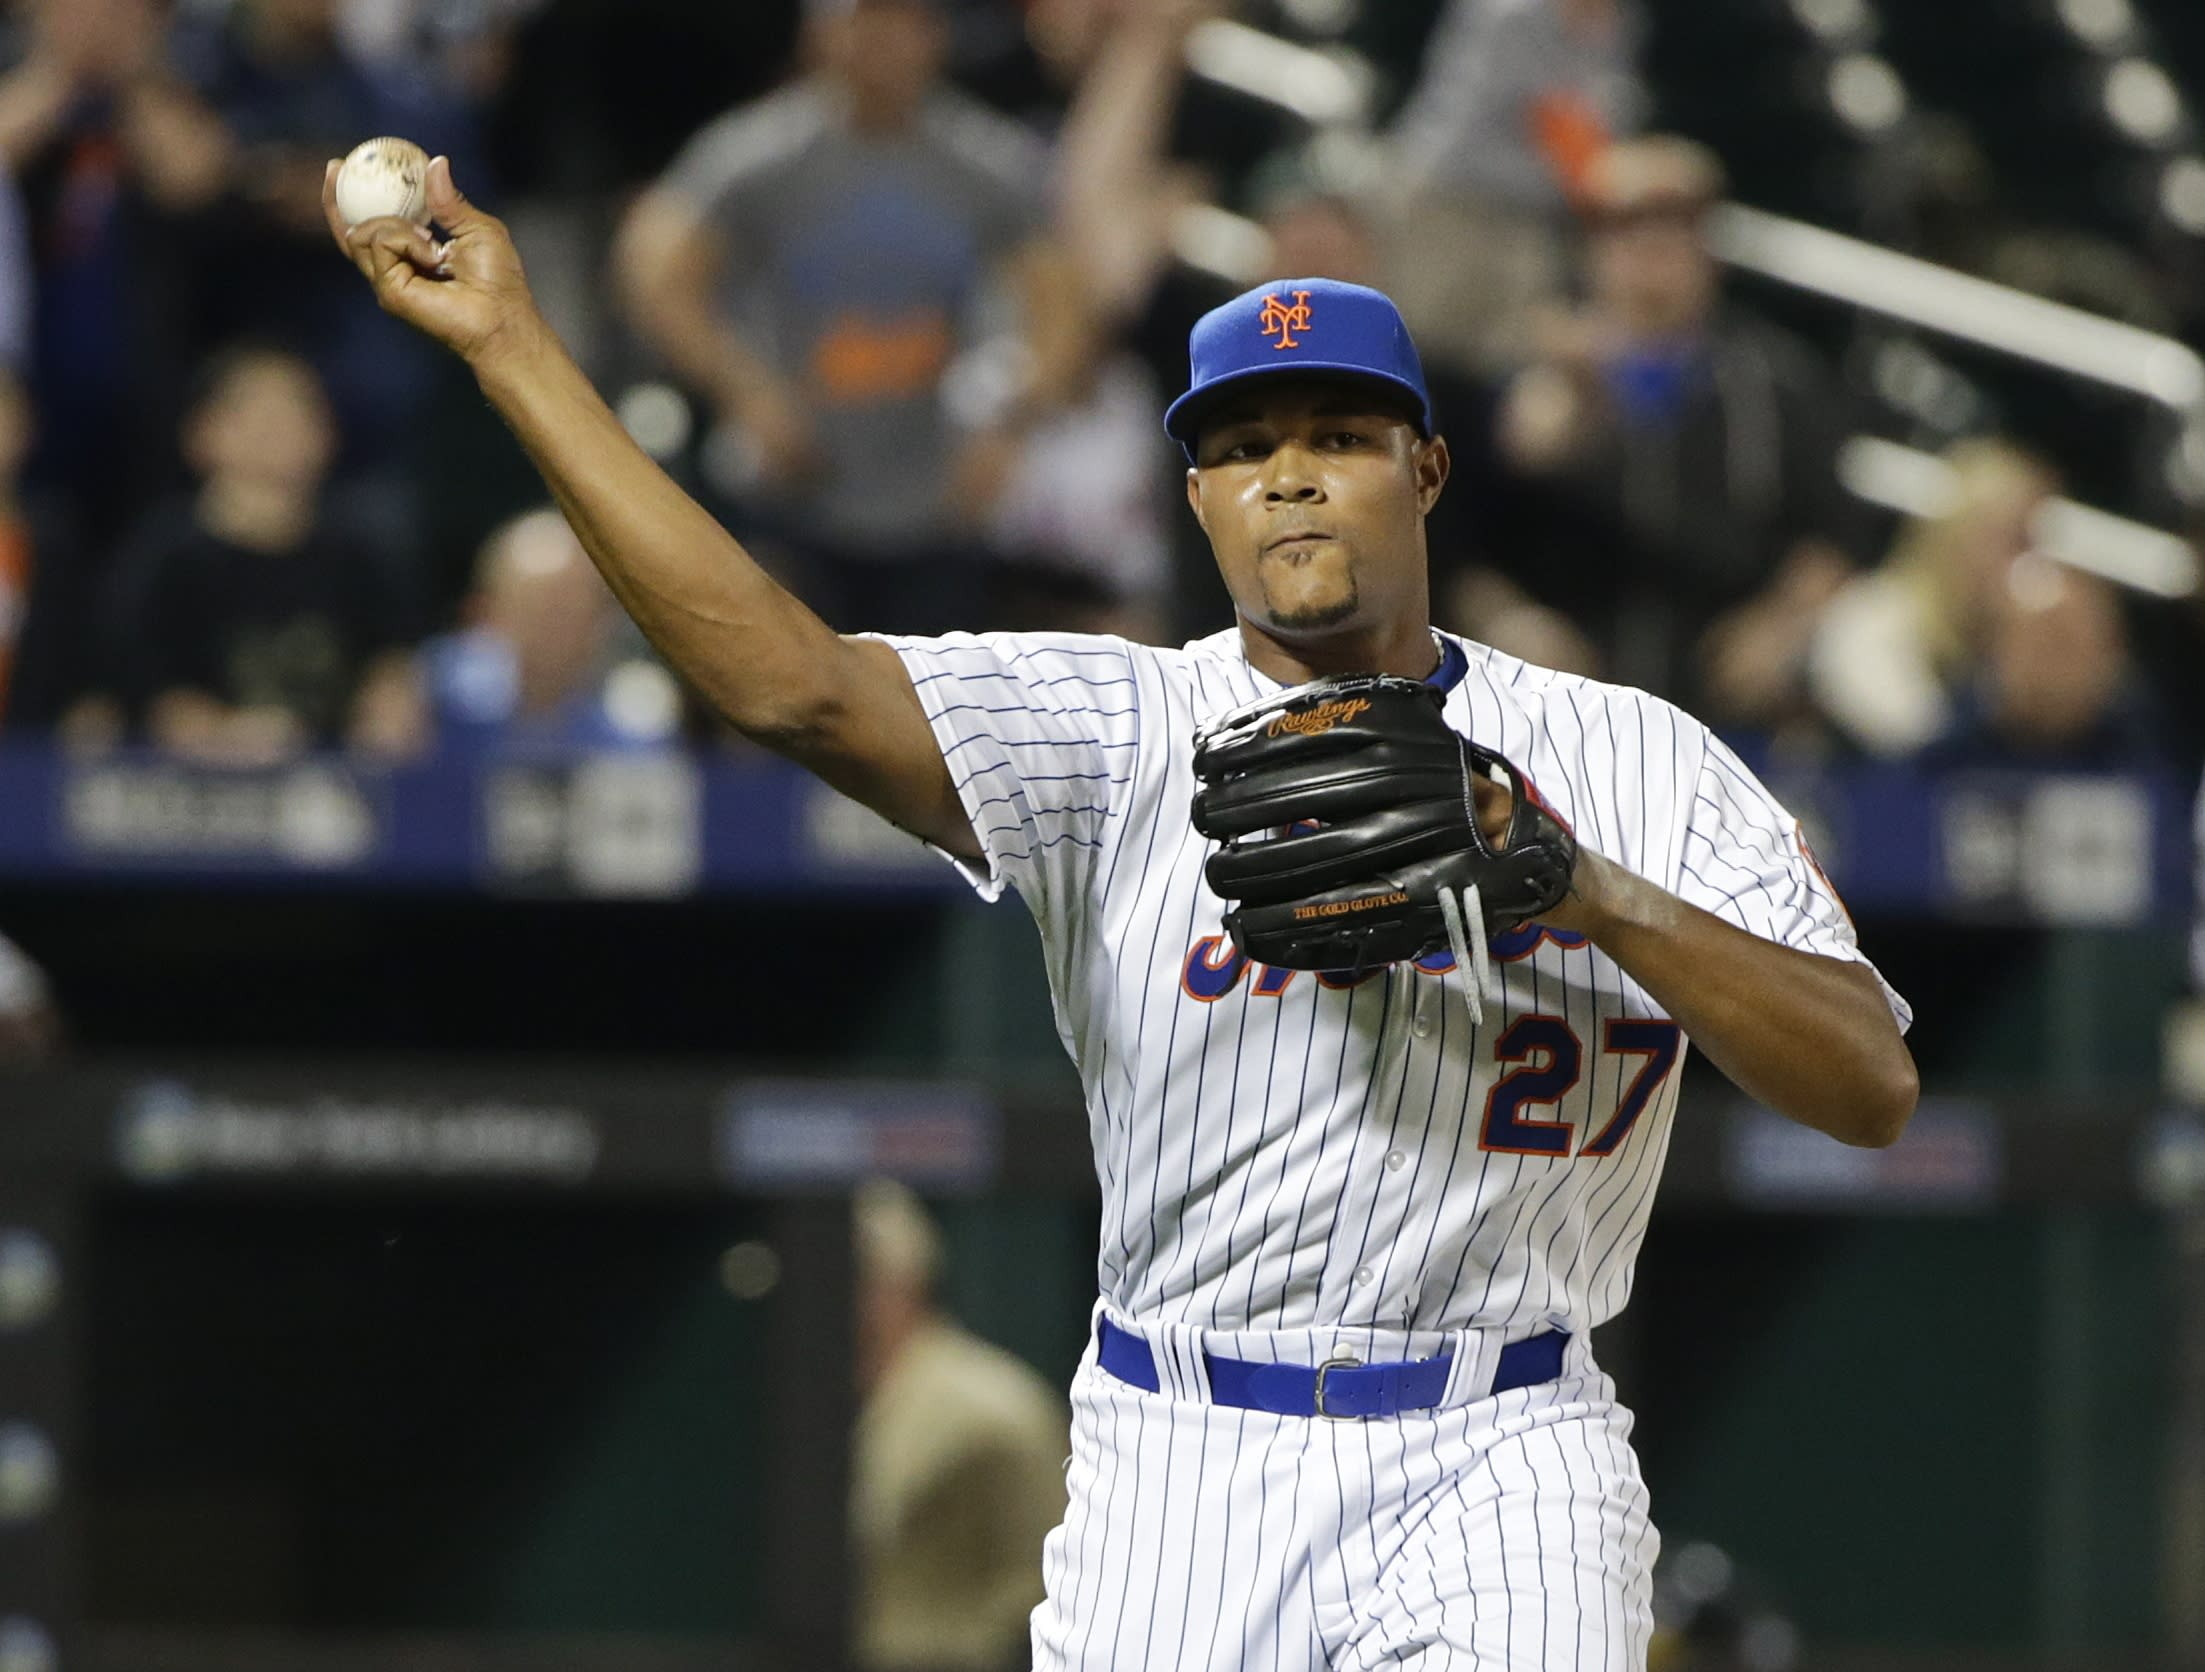 New Packed Citi: Mets off to fast start despite injuries